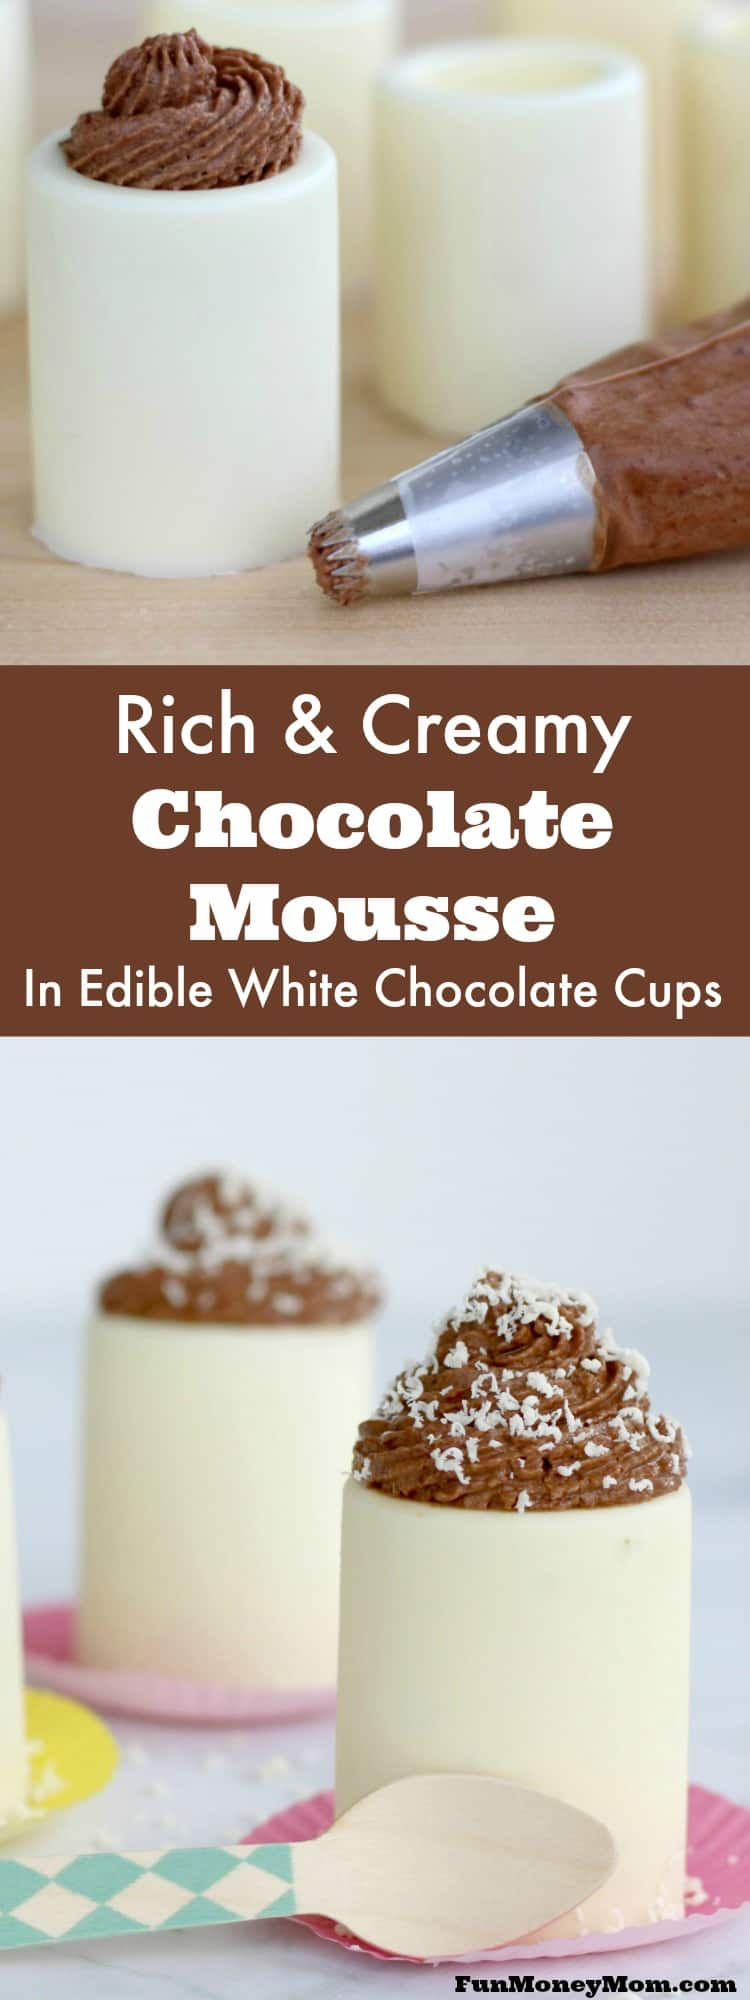 Msg 4 21+ Your guests will be wowed when you serve these rich and creamy chocolate mousse desserts. Served in edible white chocolate cups, these mini desserts will be the hit of the party! #VinoBlockParty #ad